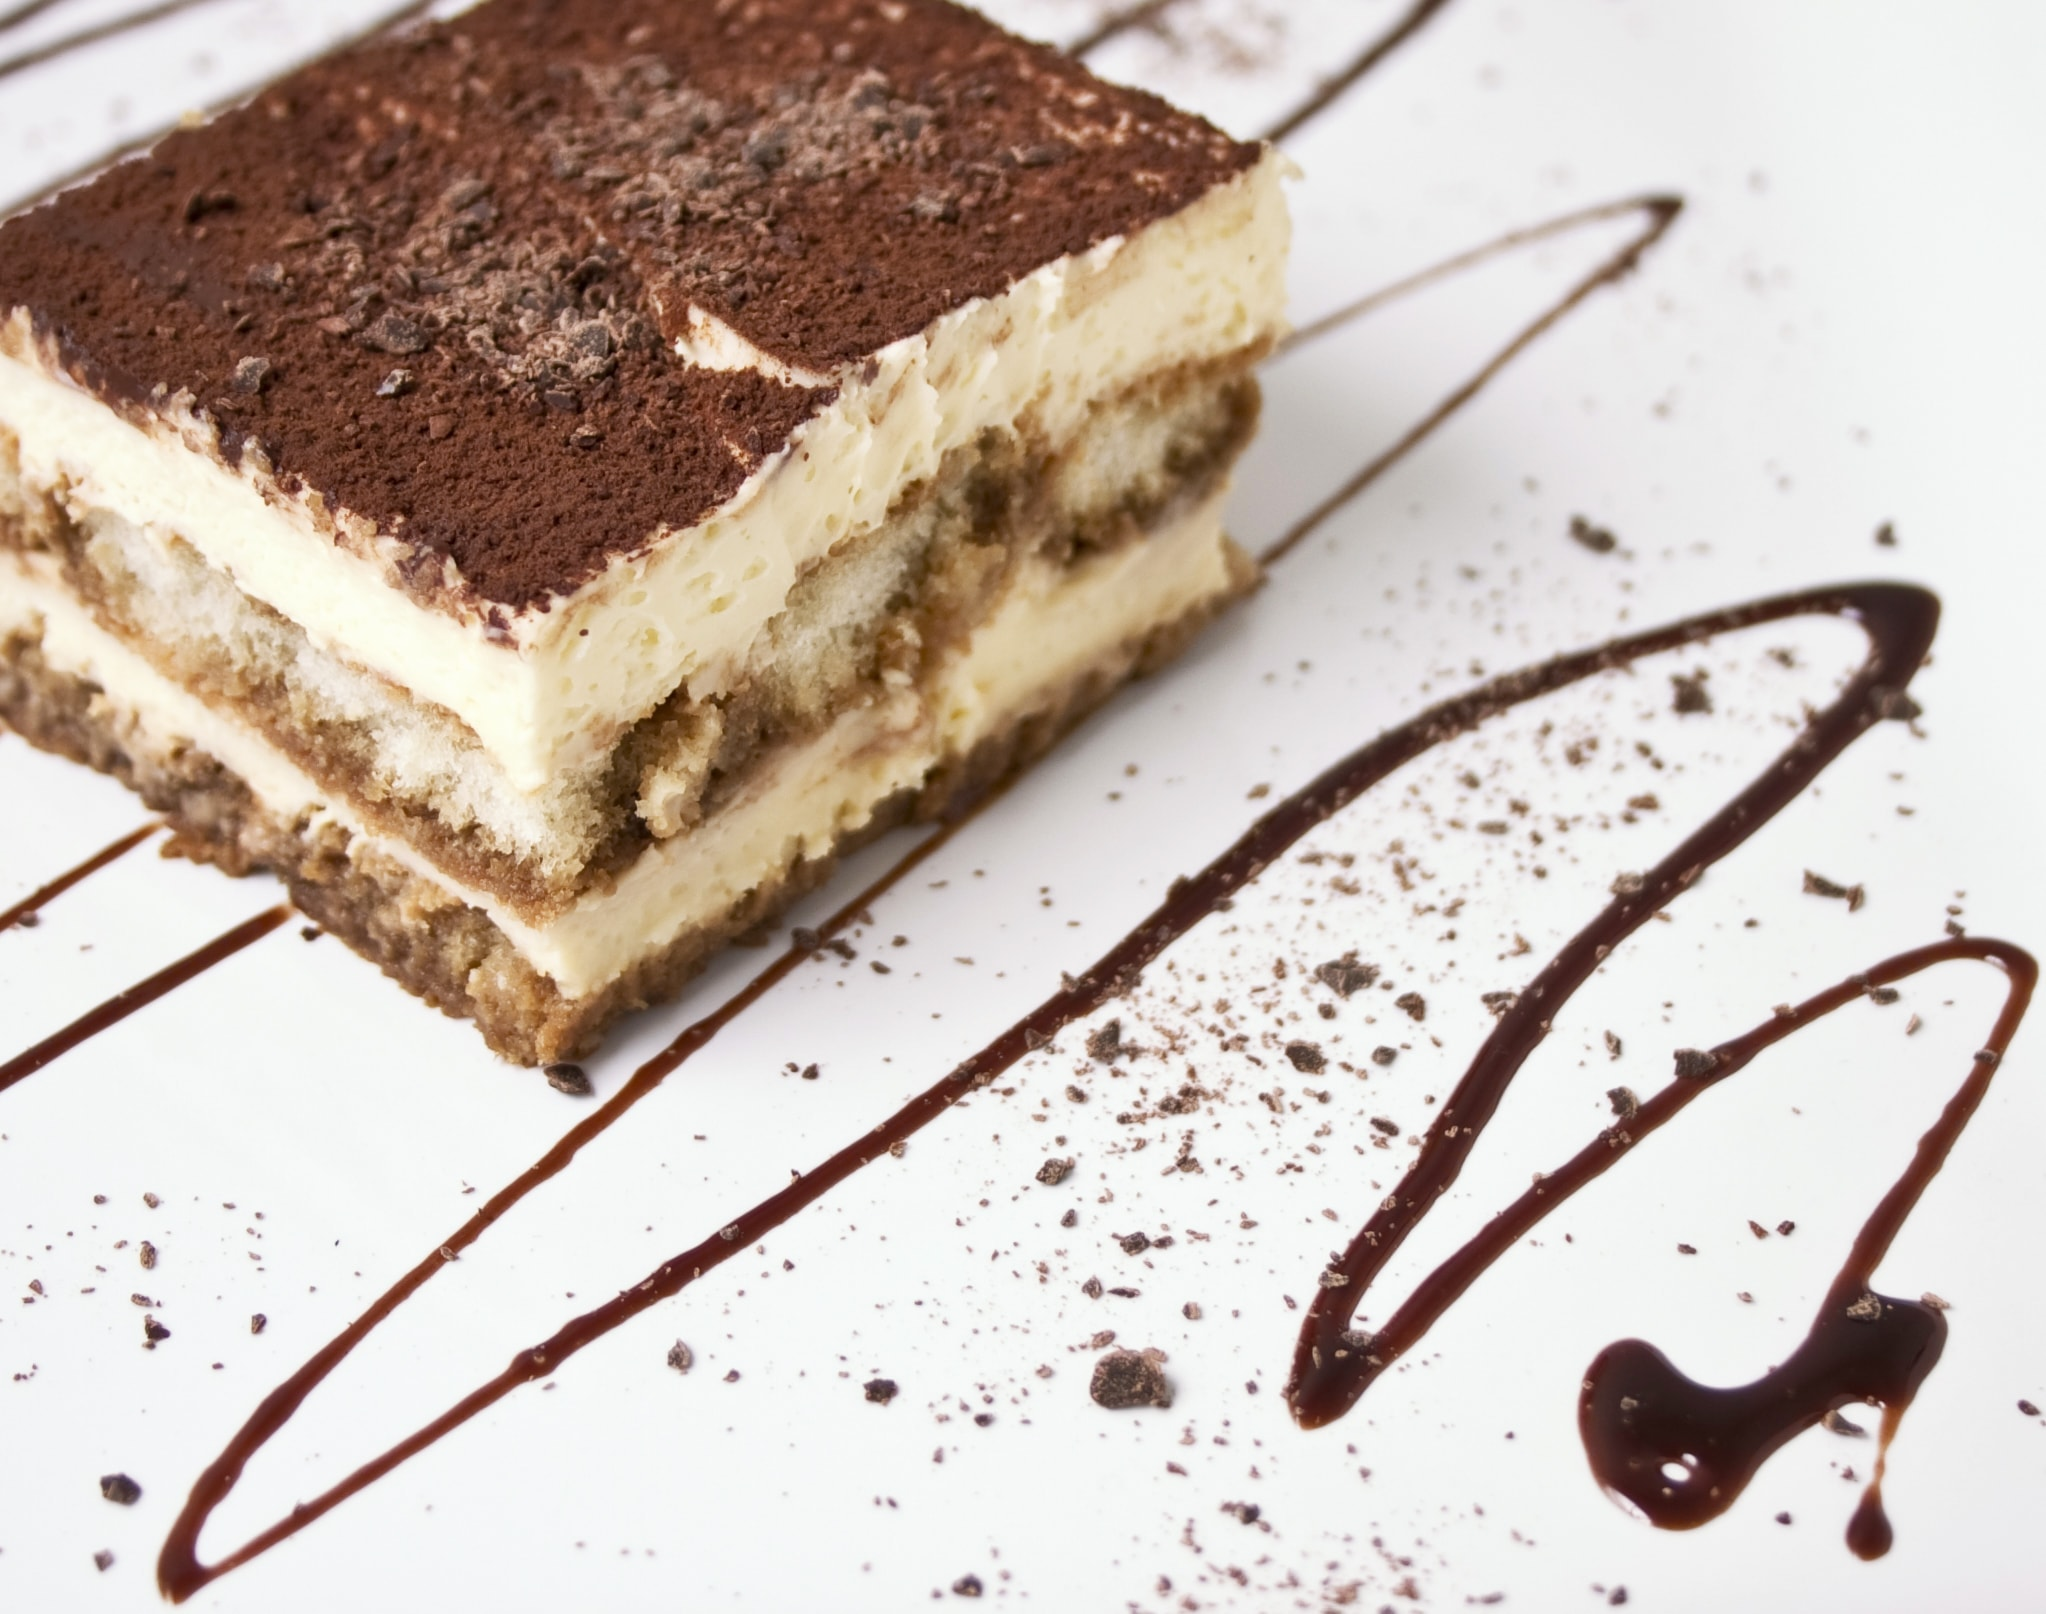 This authentic Italian Tiramisu recipe is one you have to try.